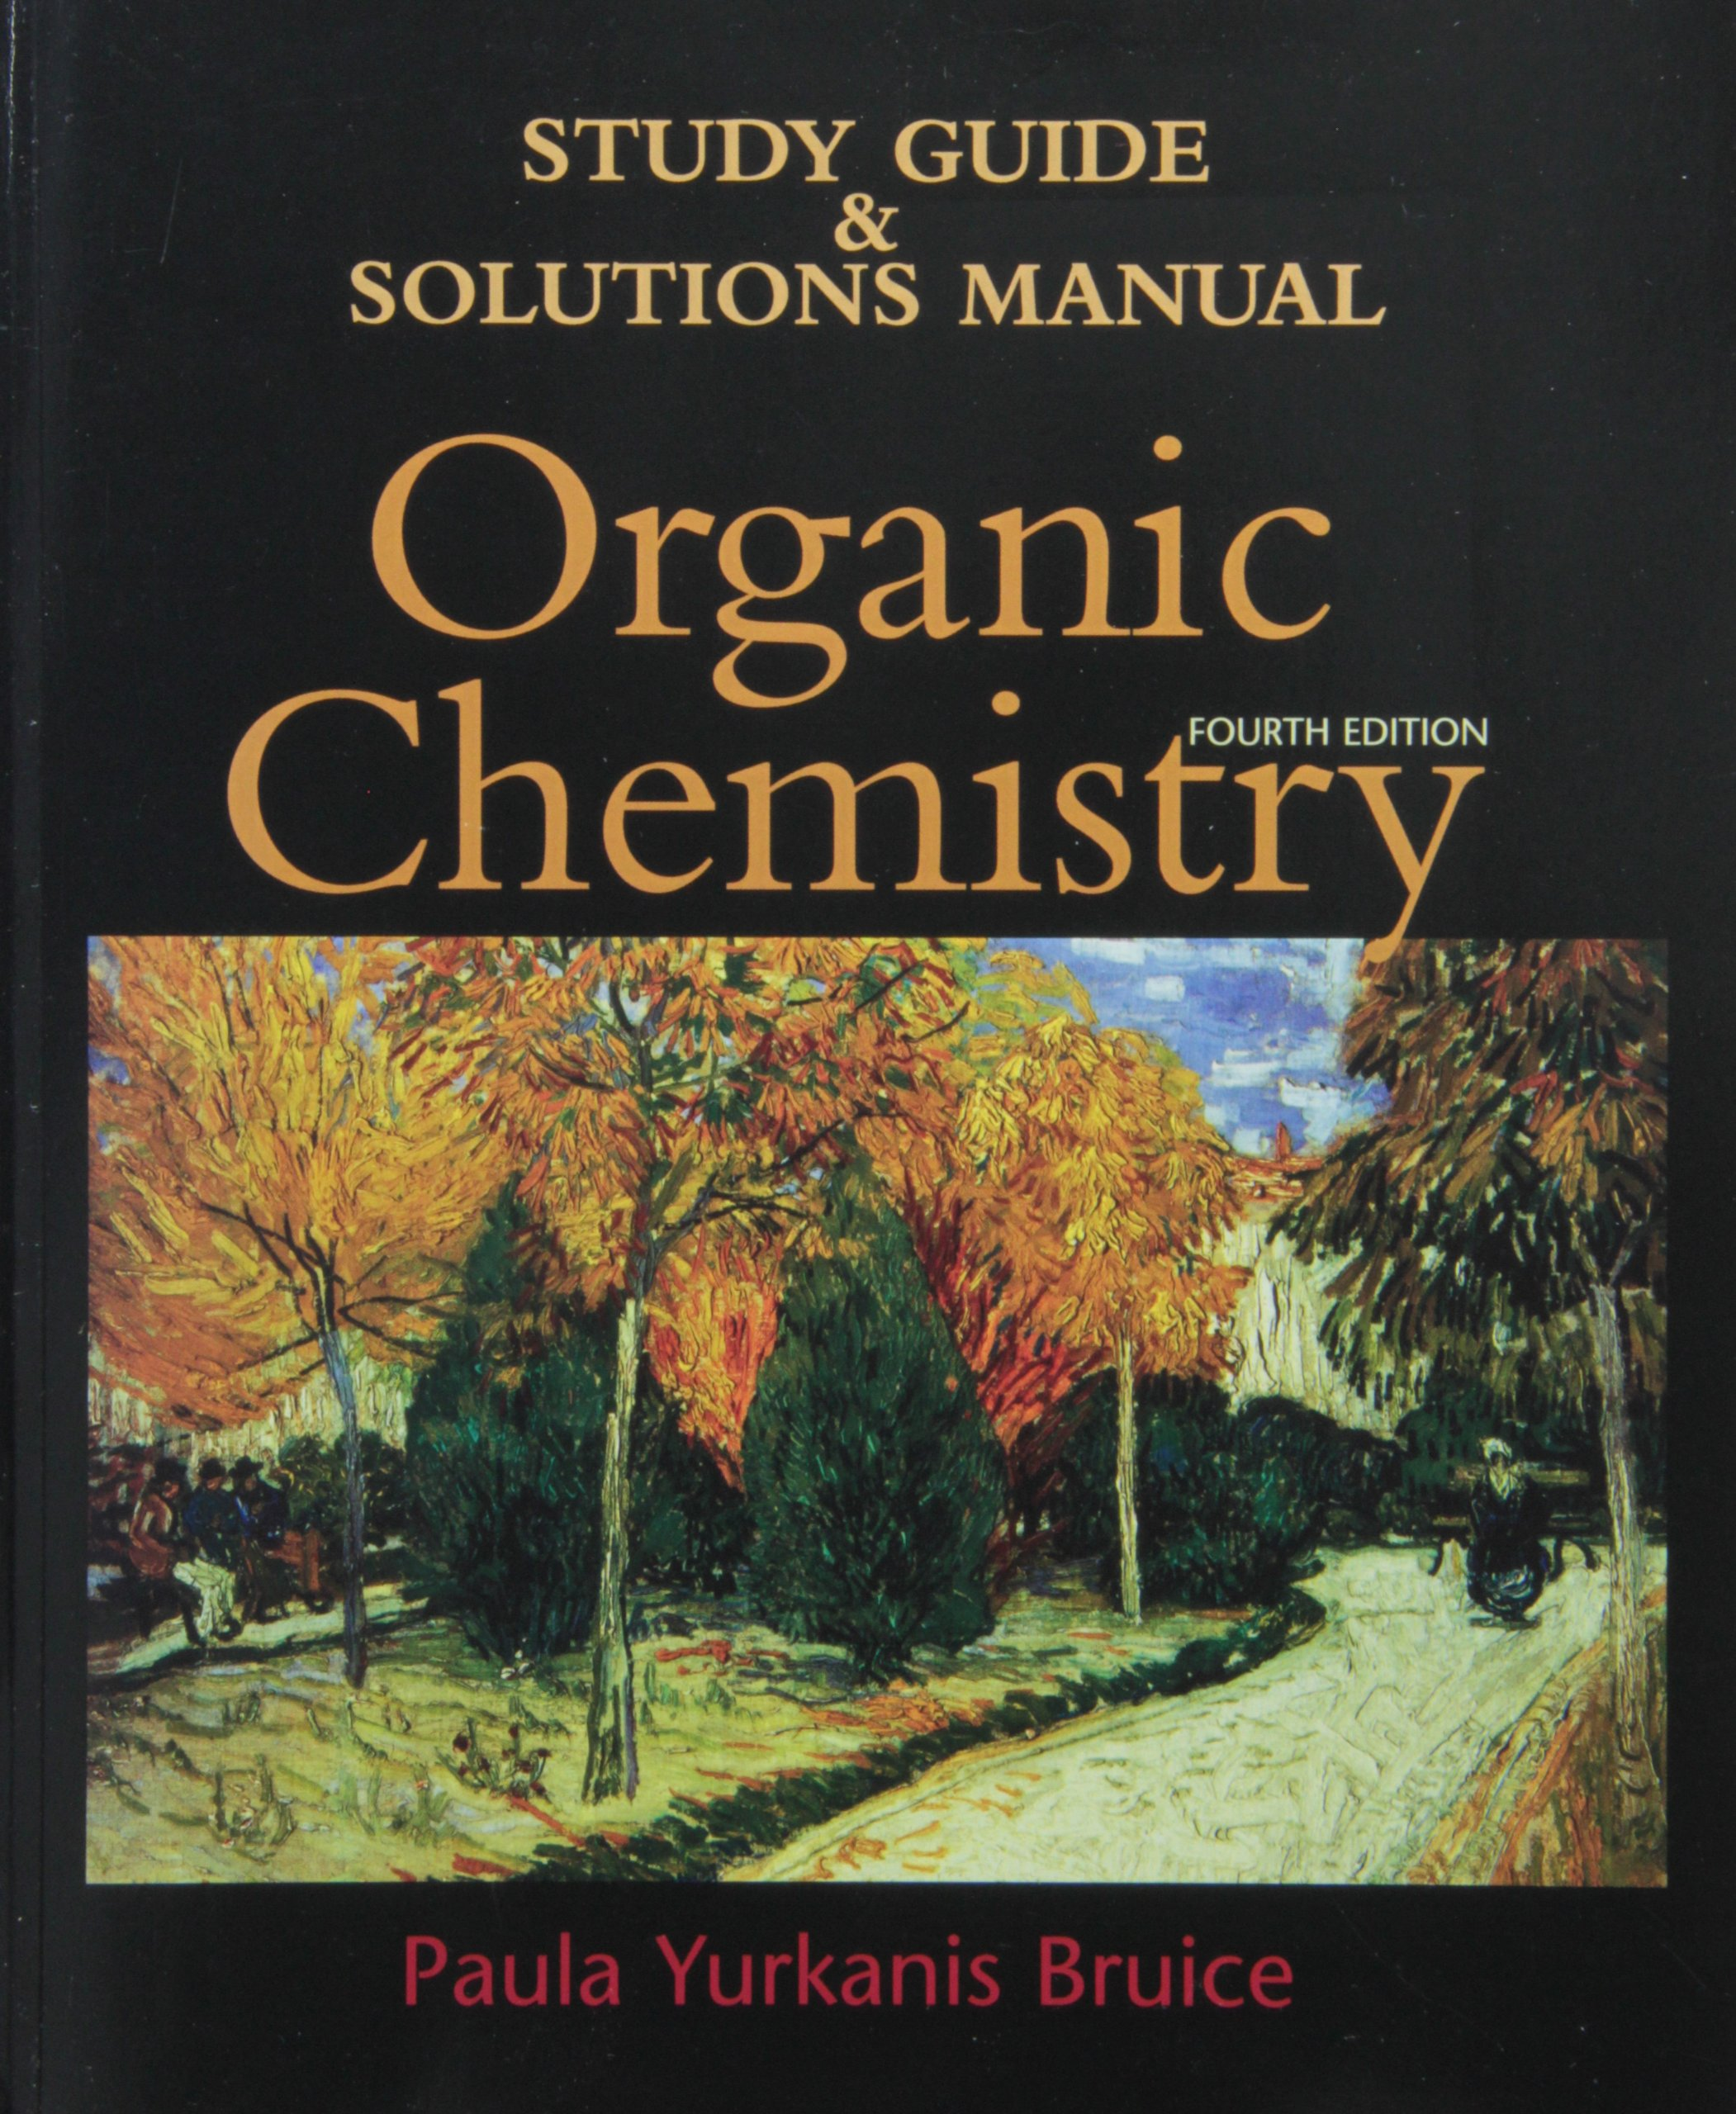 Study Guide/Solutions Manual: Amazon.co.uk: Paula Yurkanis Bruice:  9780131410107: Books